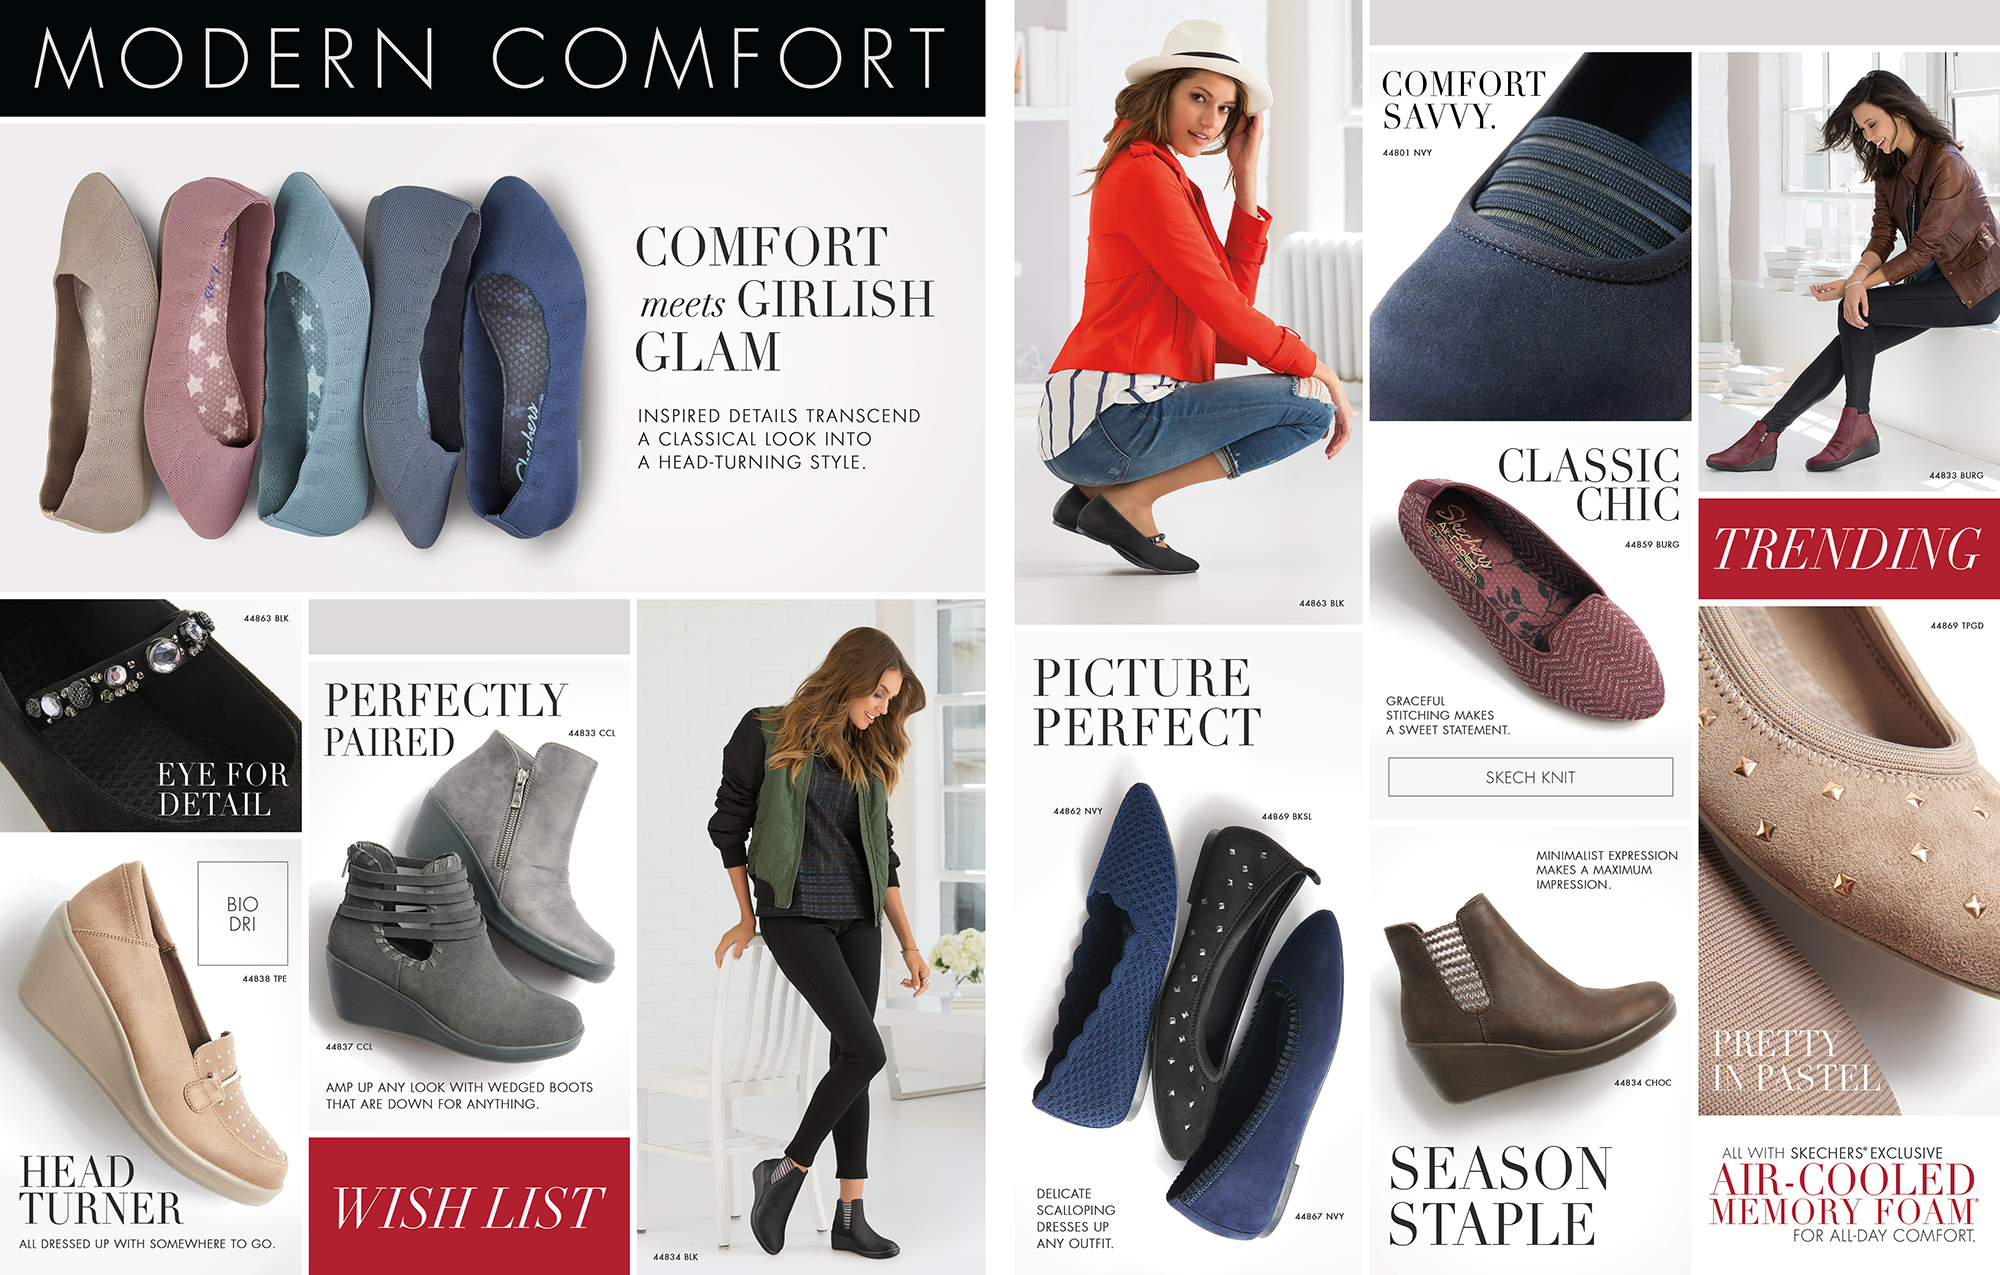 W_MODERN_COMFORT_FALL2019_LOOBOOK_Inside_For-digital_s